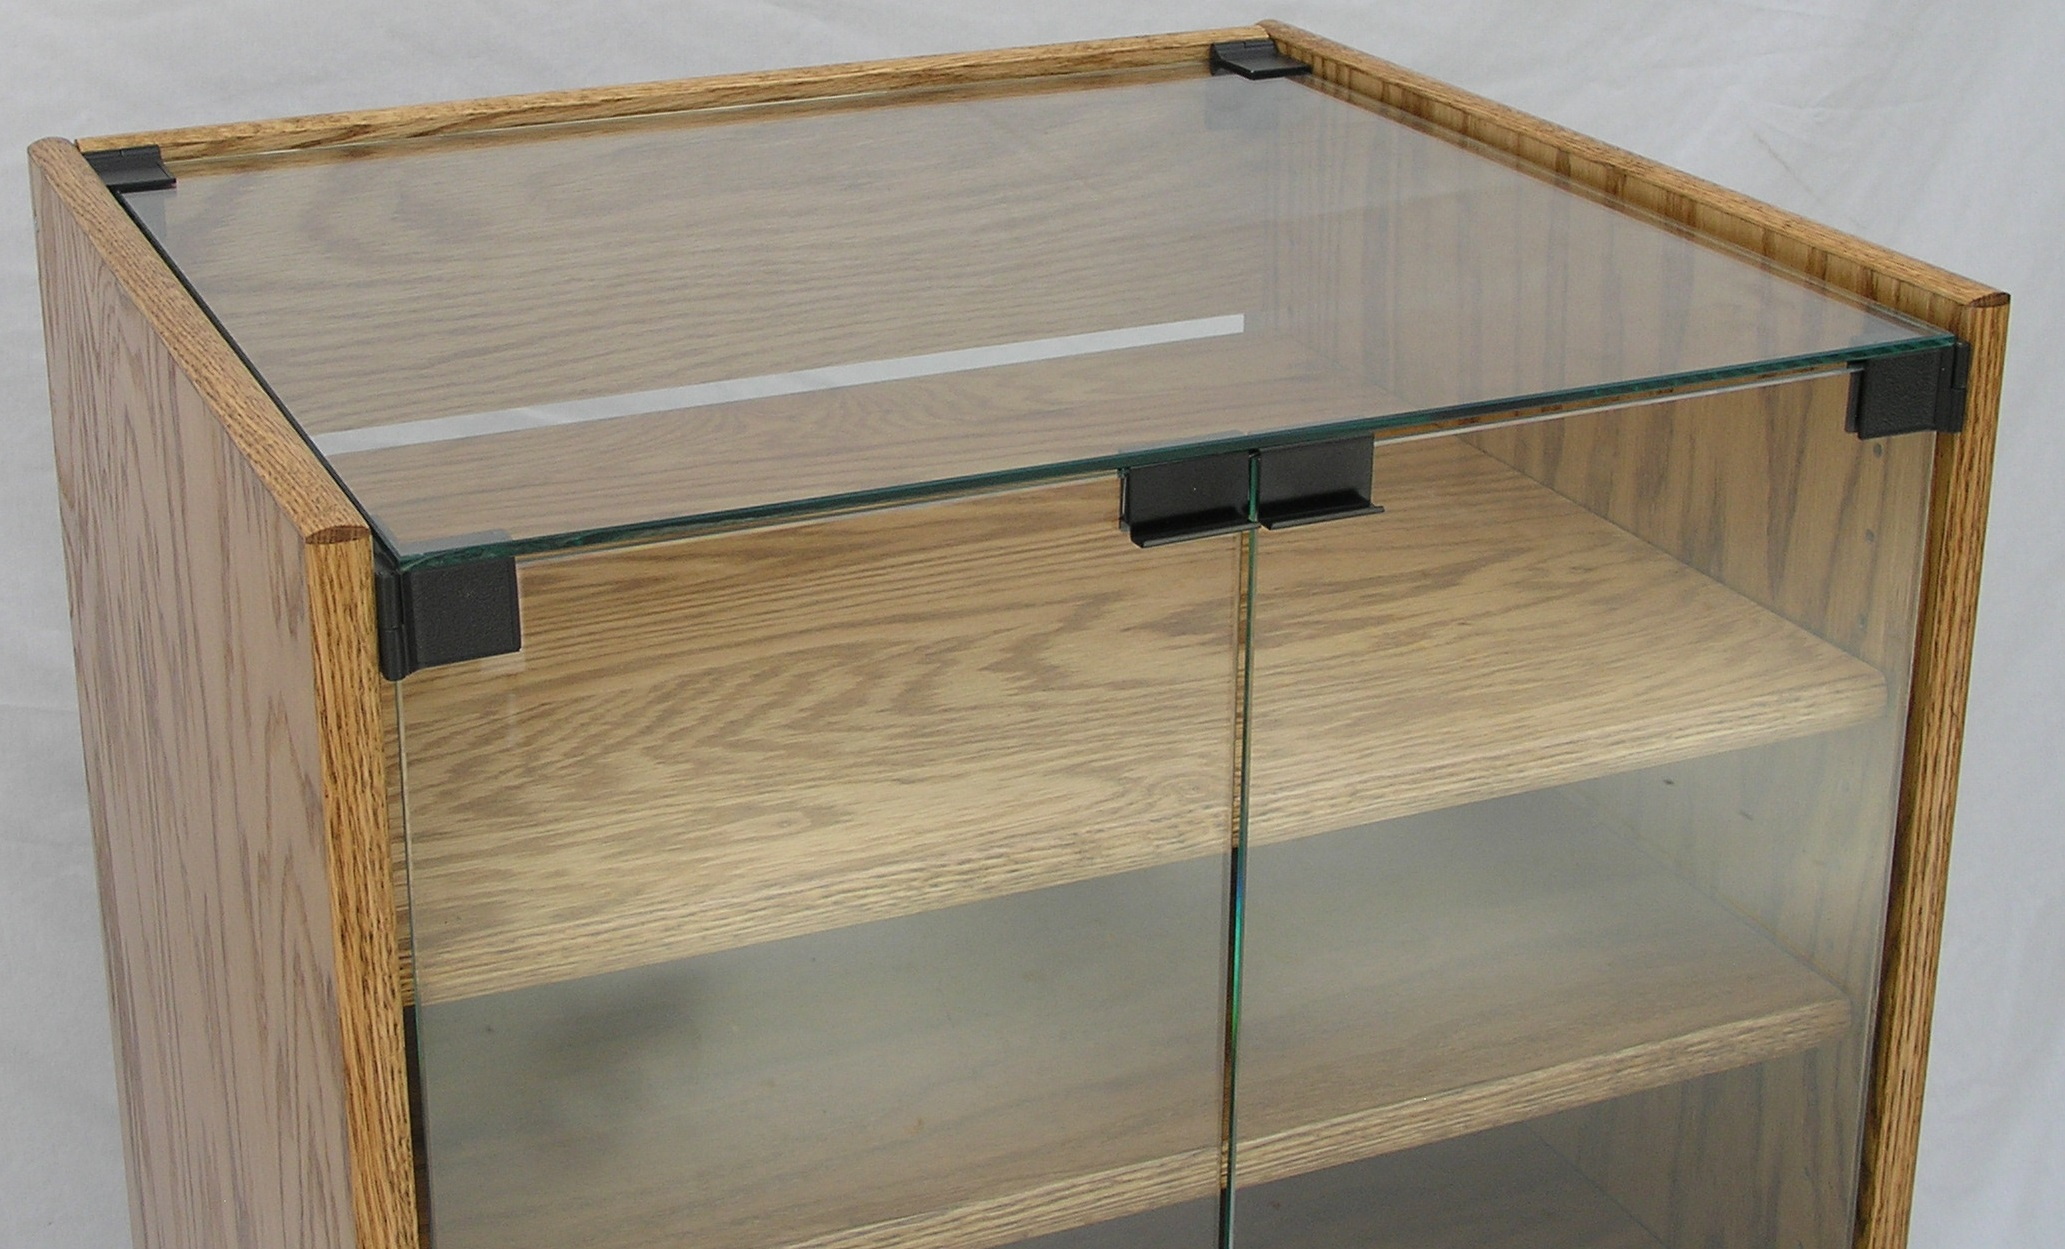 glass-top-stereo-cabinet-004.jpg